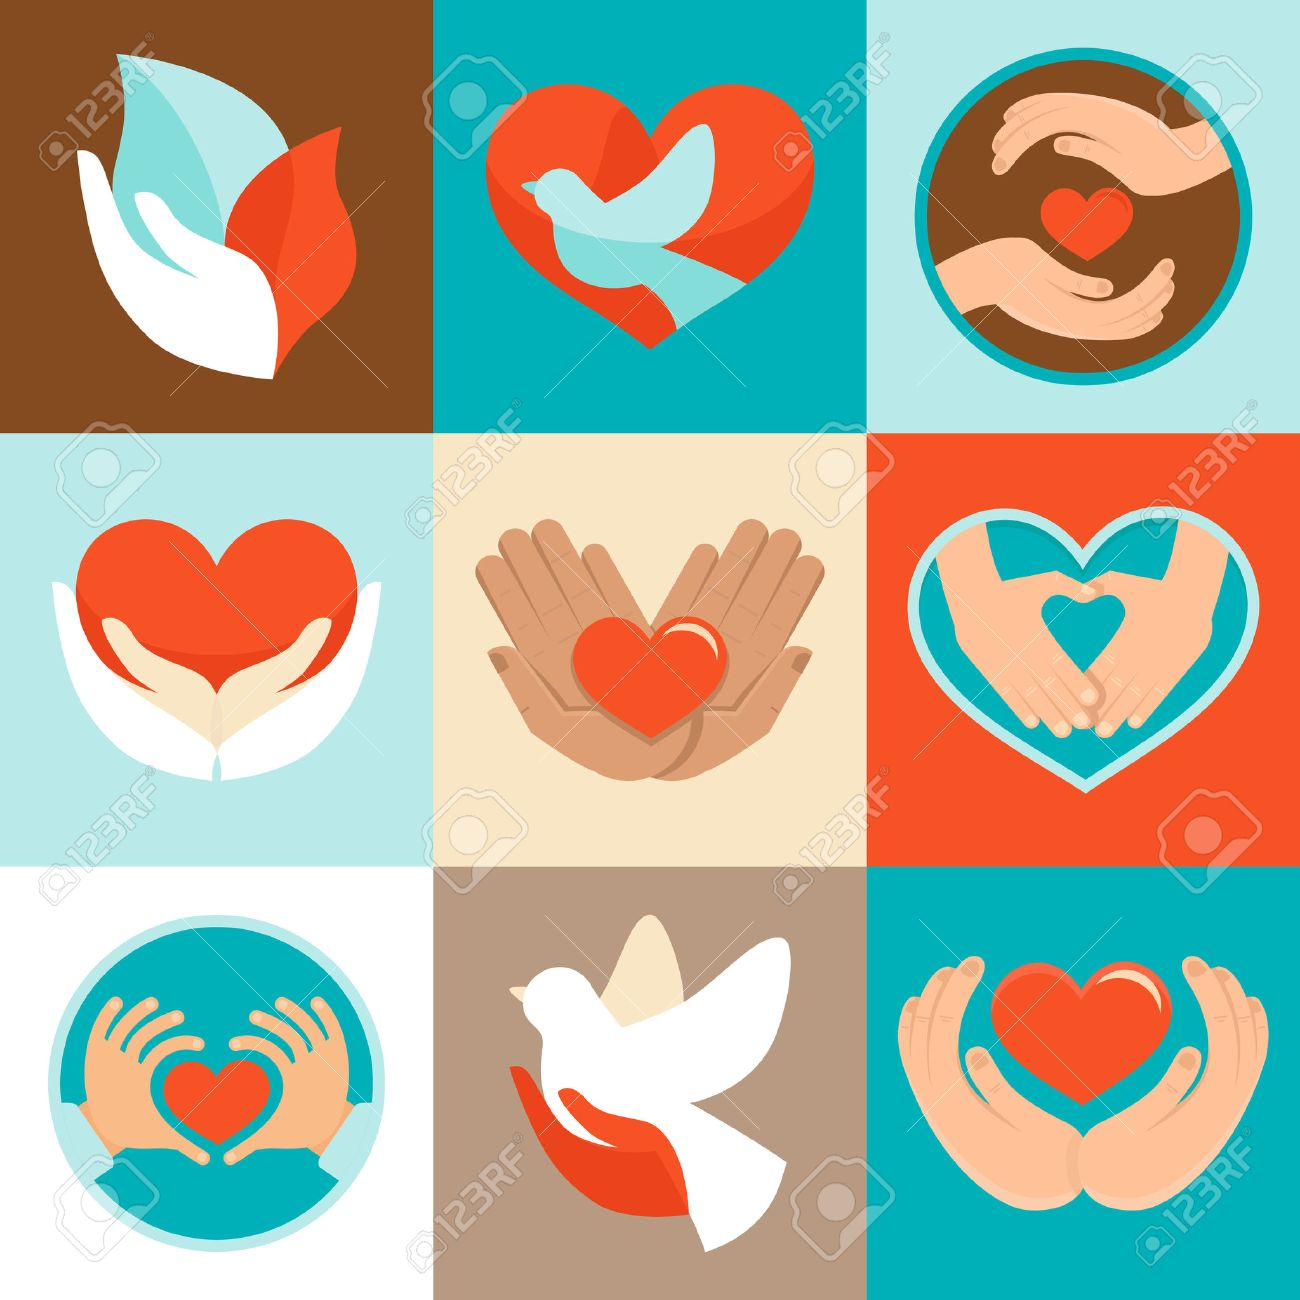 Vector Signs And Symbols In Flat Style Symbols Of Love And Care